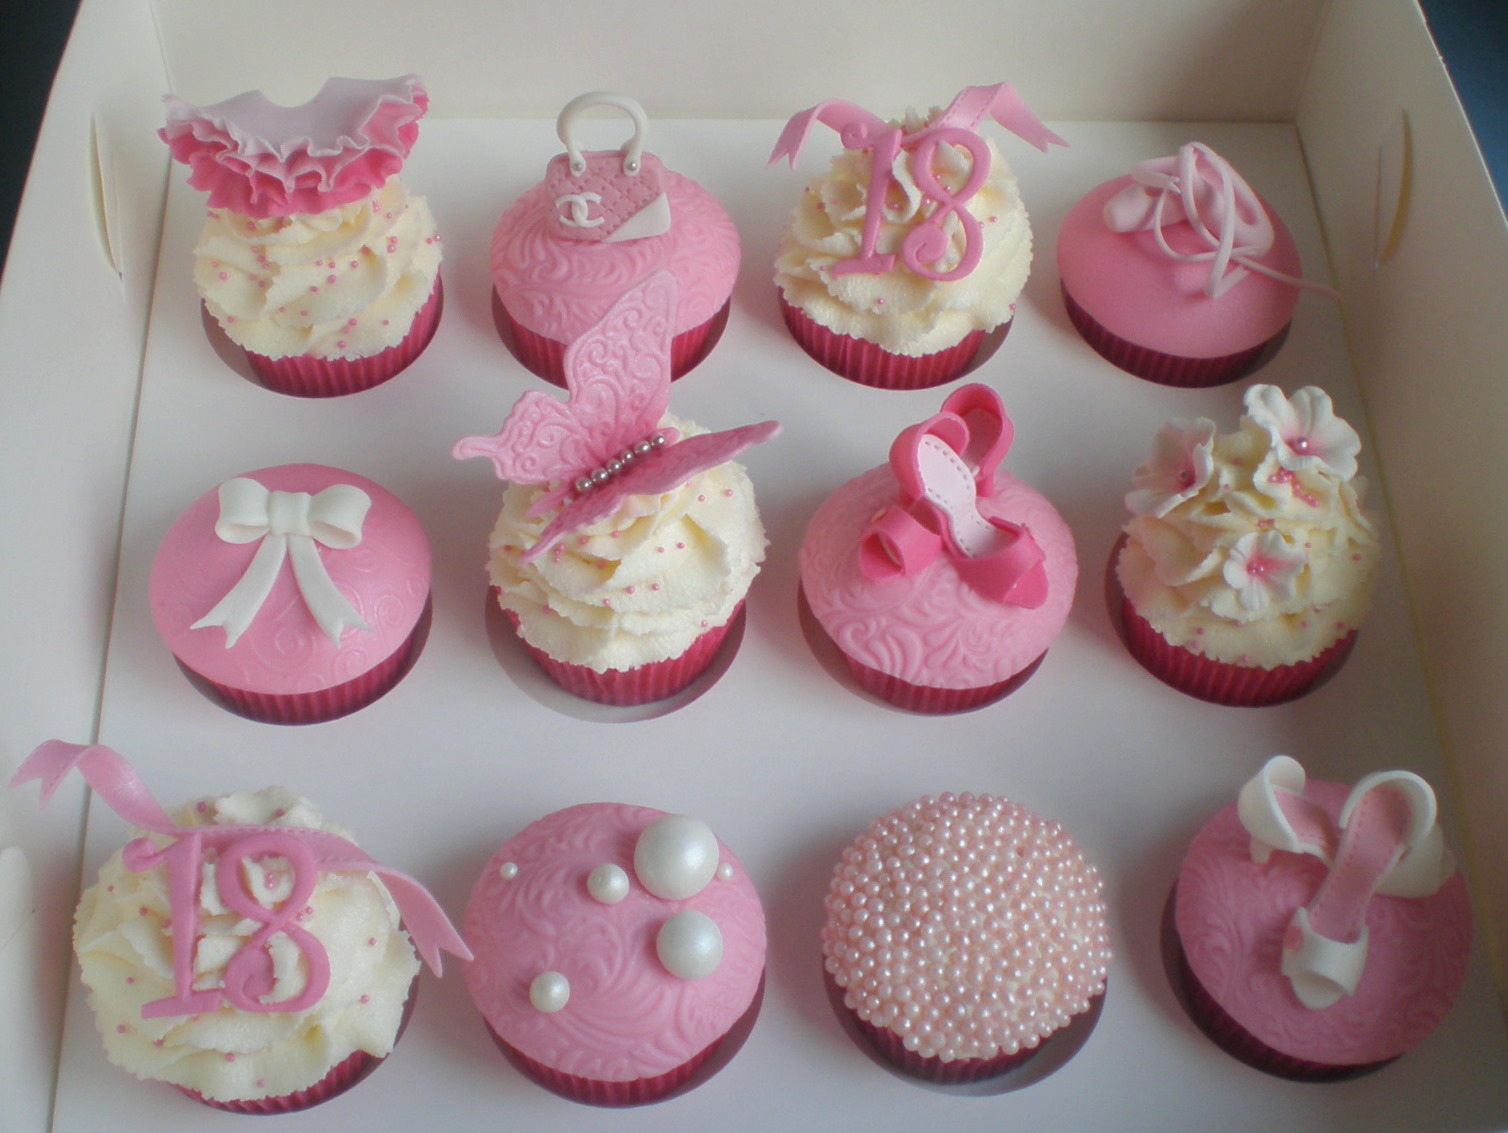 Cute Cupcakes For Boys Birthday http://sugarsirencakesmackay.blogspot.com/2011/02/18th-birthday-girly-cupcakes.html